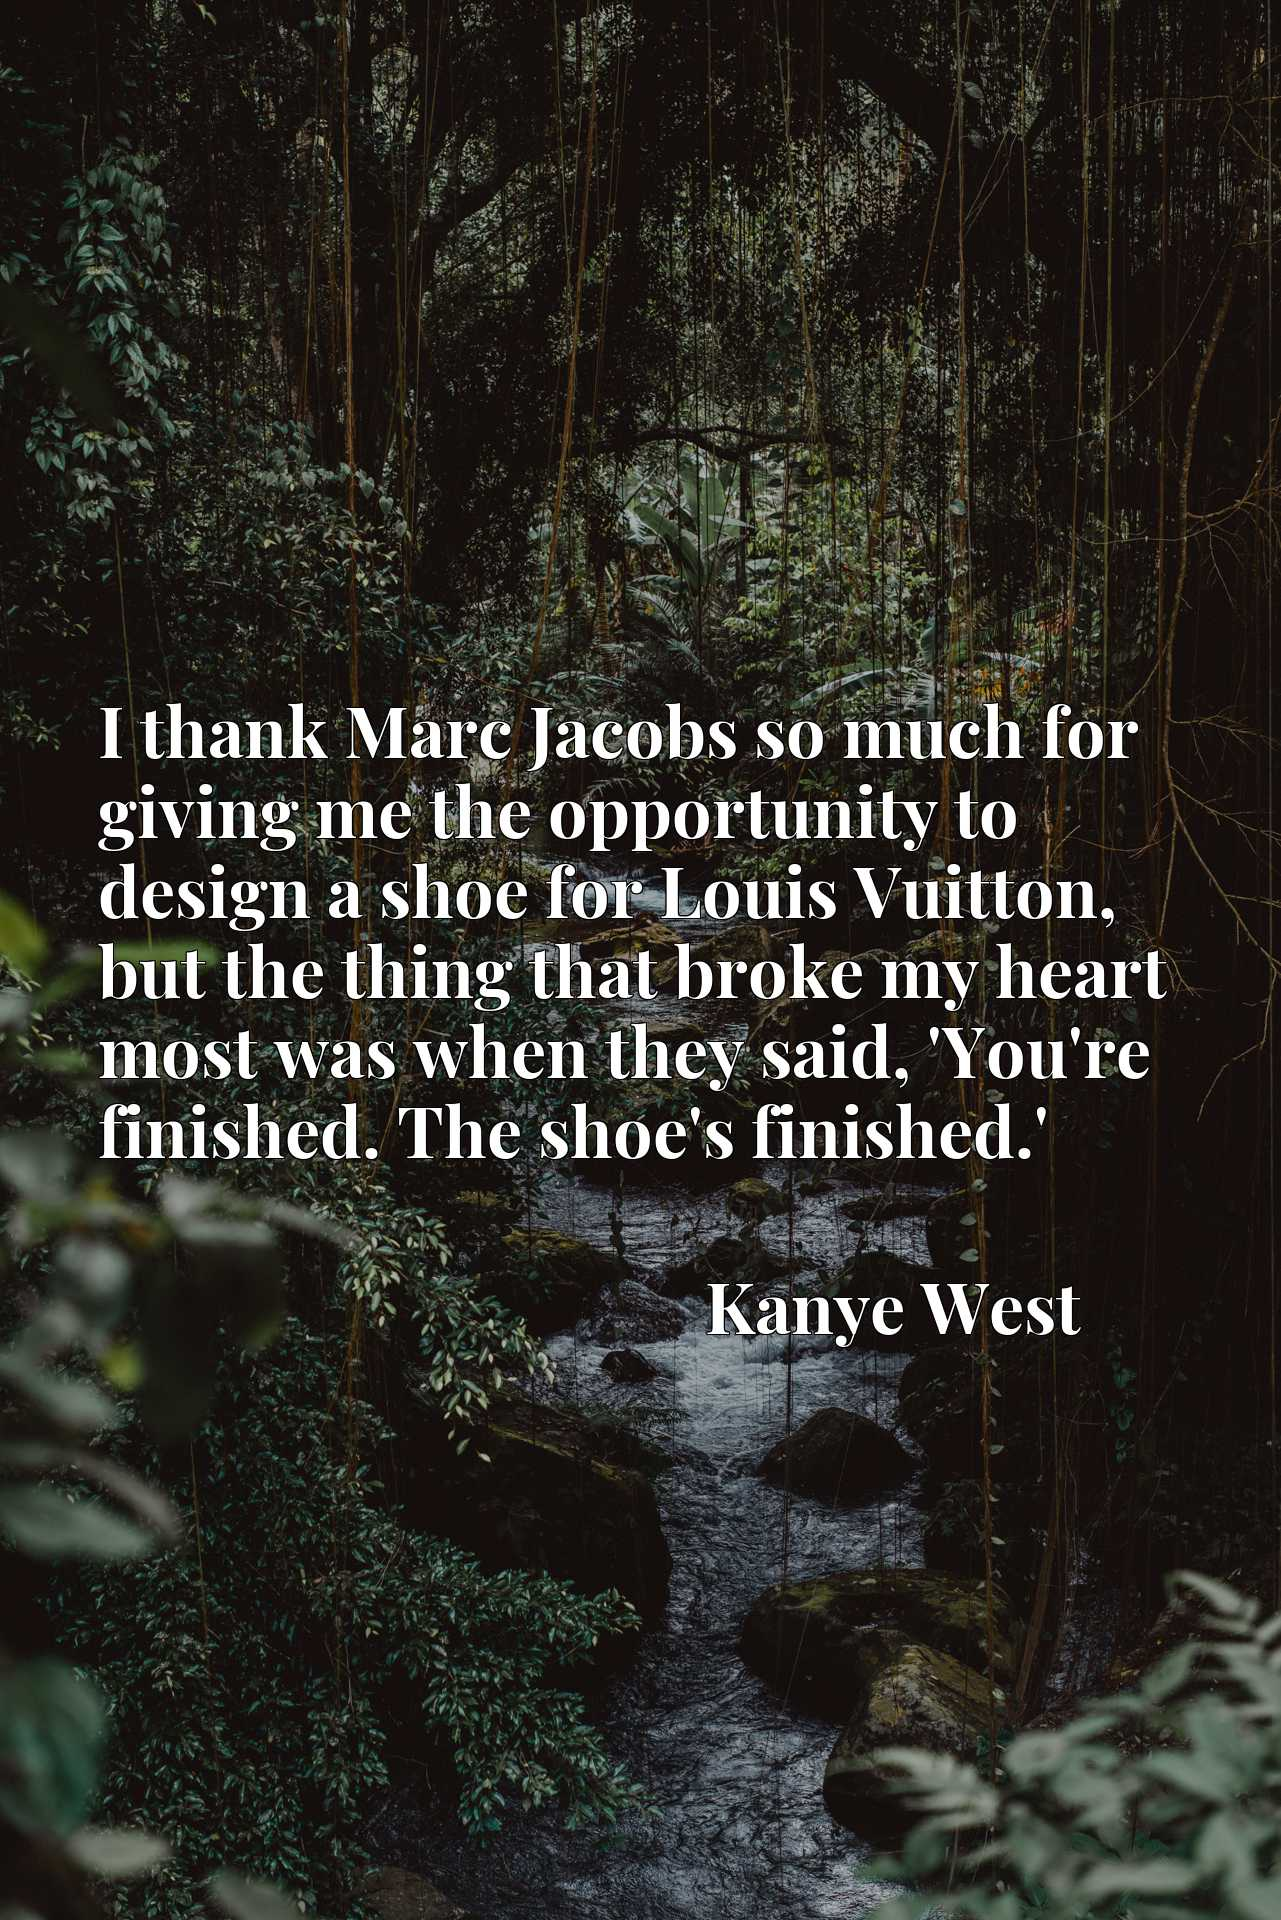 I thank Marc Jacobs so much for giving me the opportunity to design a shoe for Louis Vuitton, but the thing that broke my heart most was when they said, 'You're finished. The shoe's finished.'